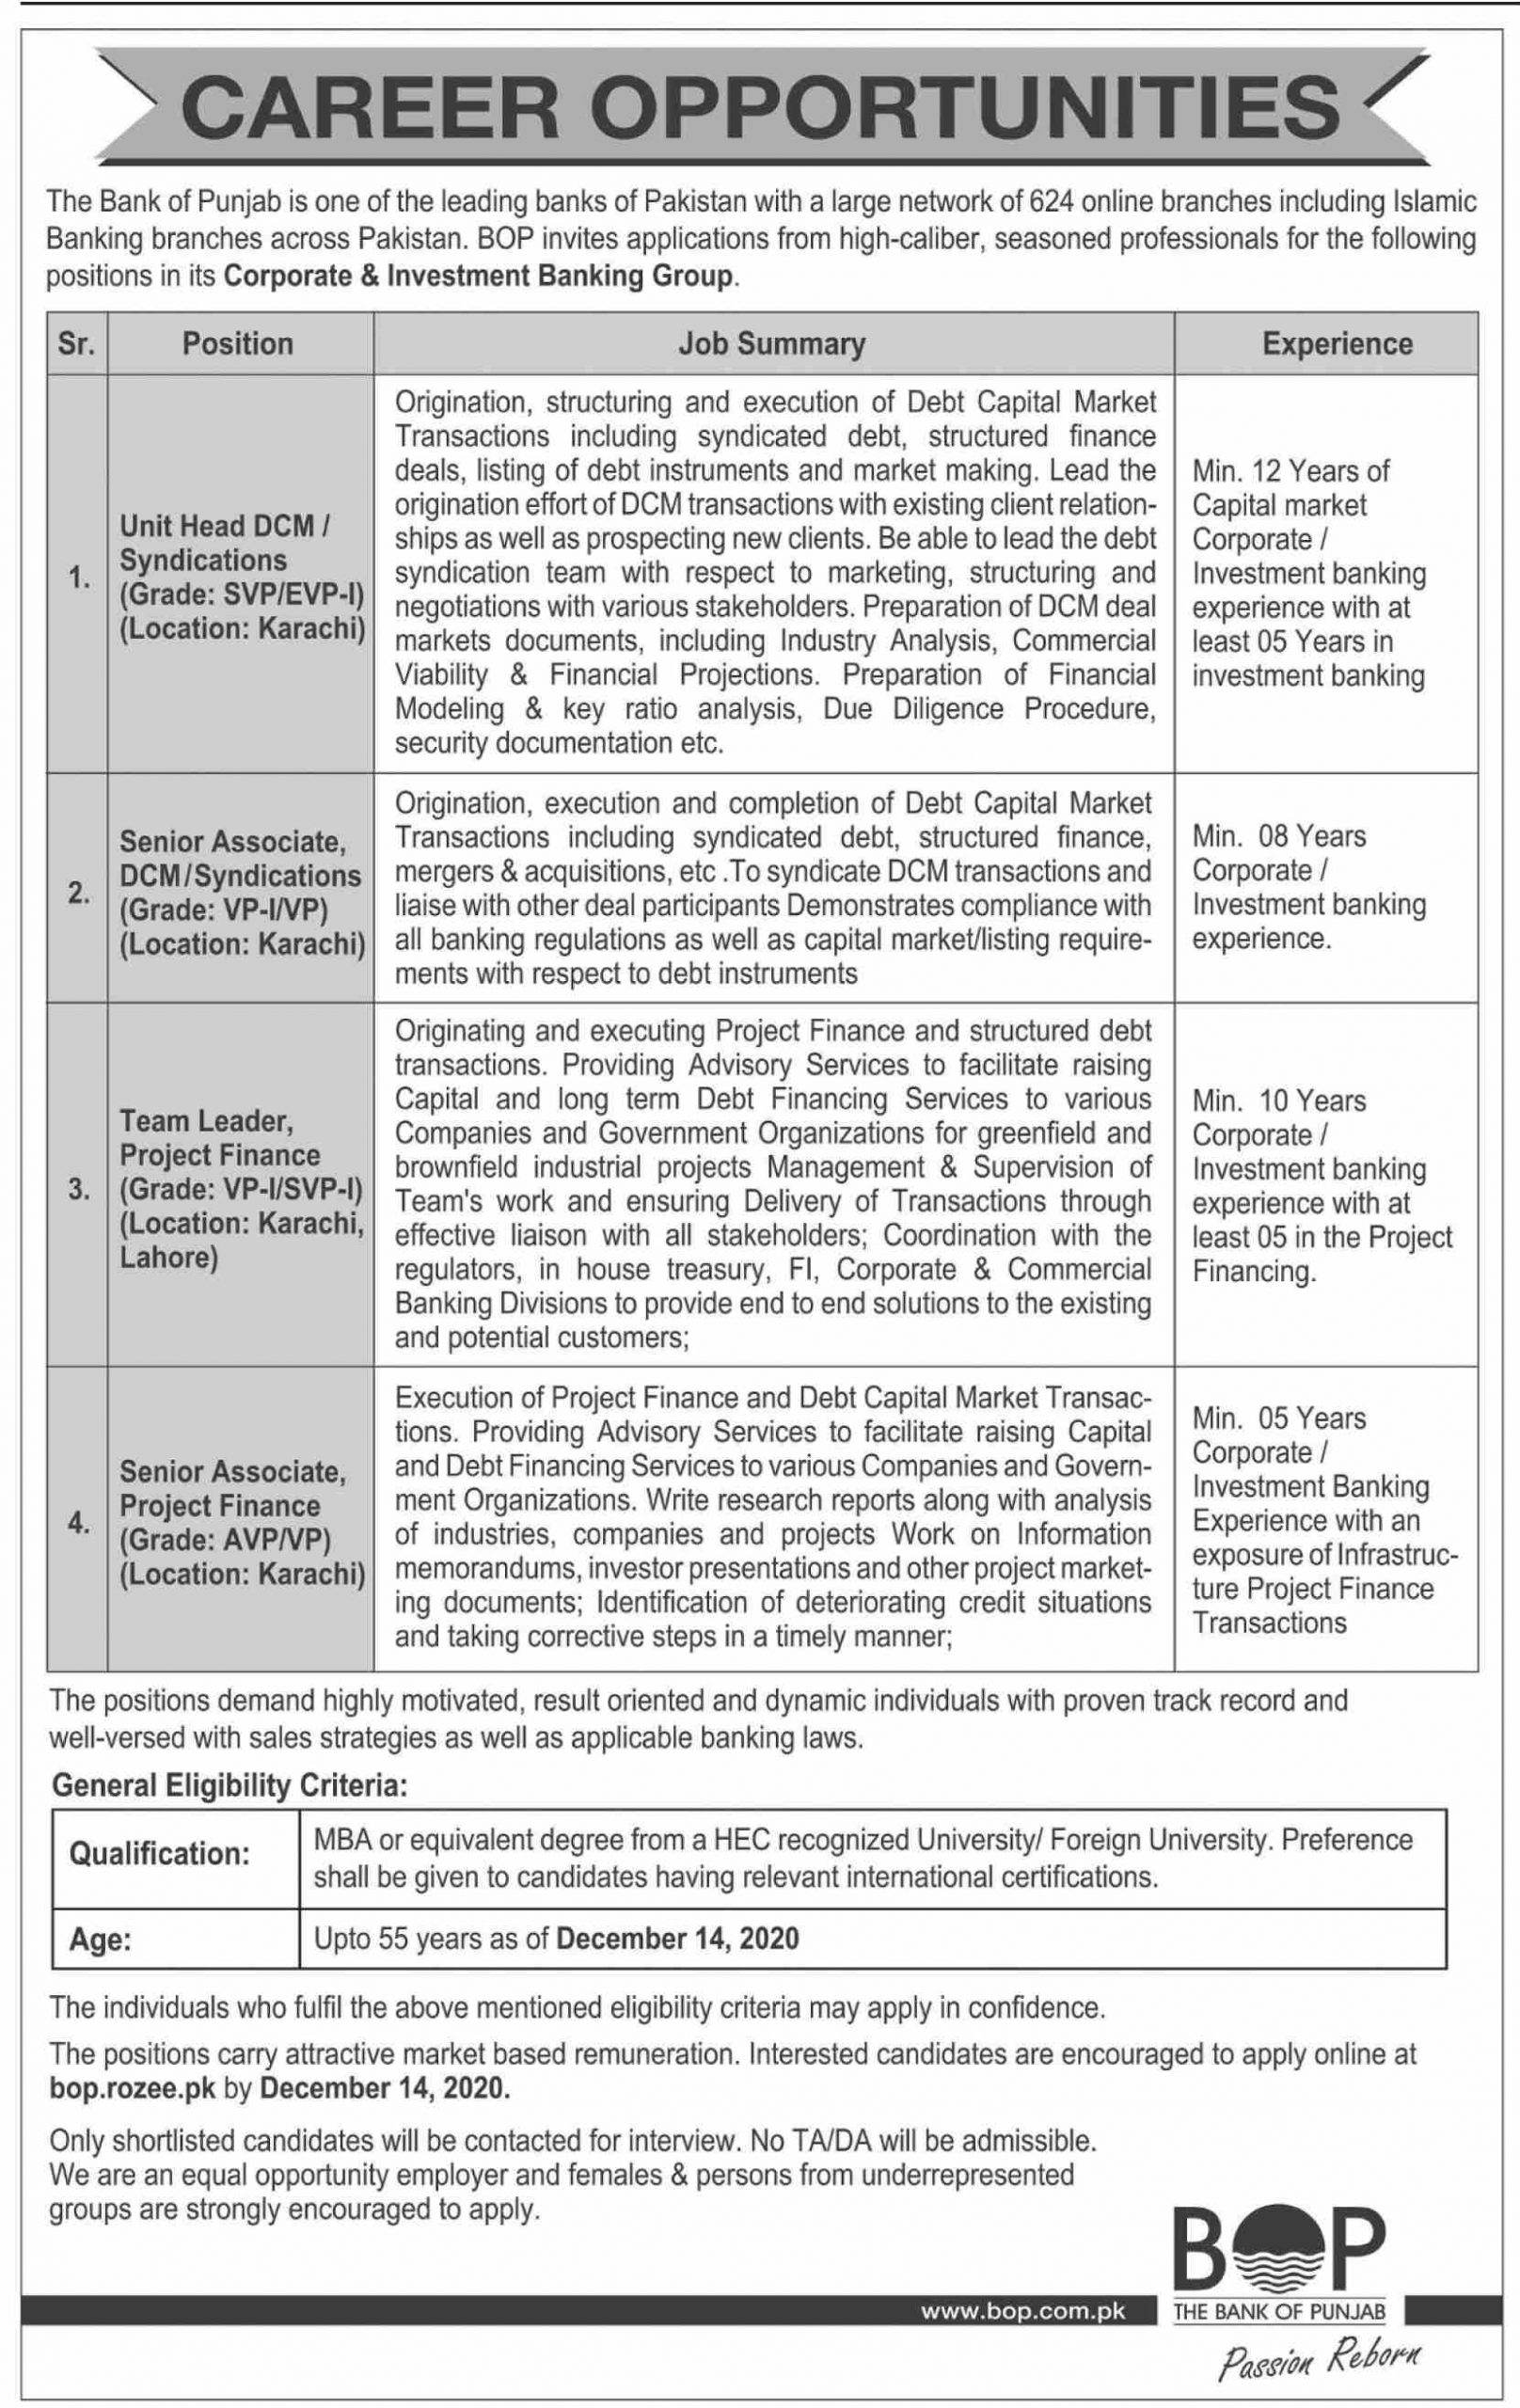 The Bank of Punjab BOP Jobs November 2020